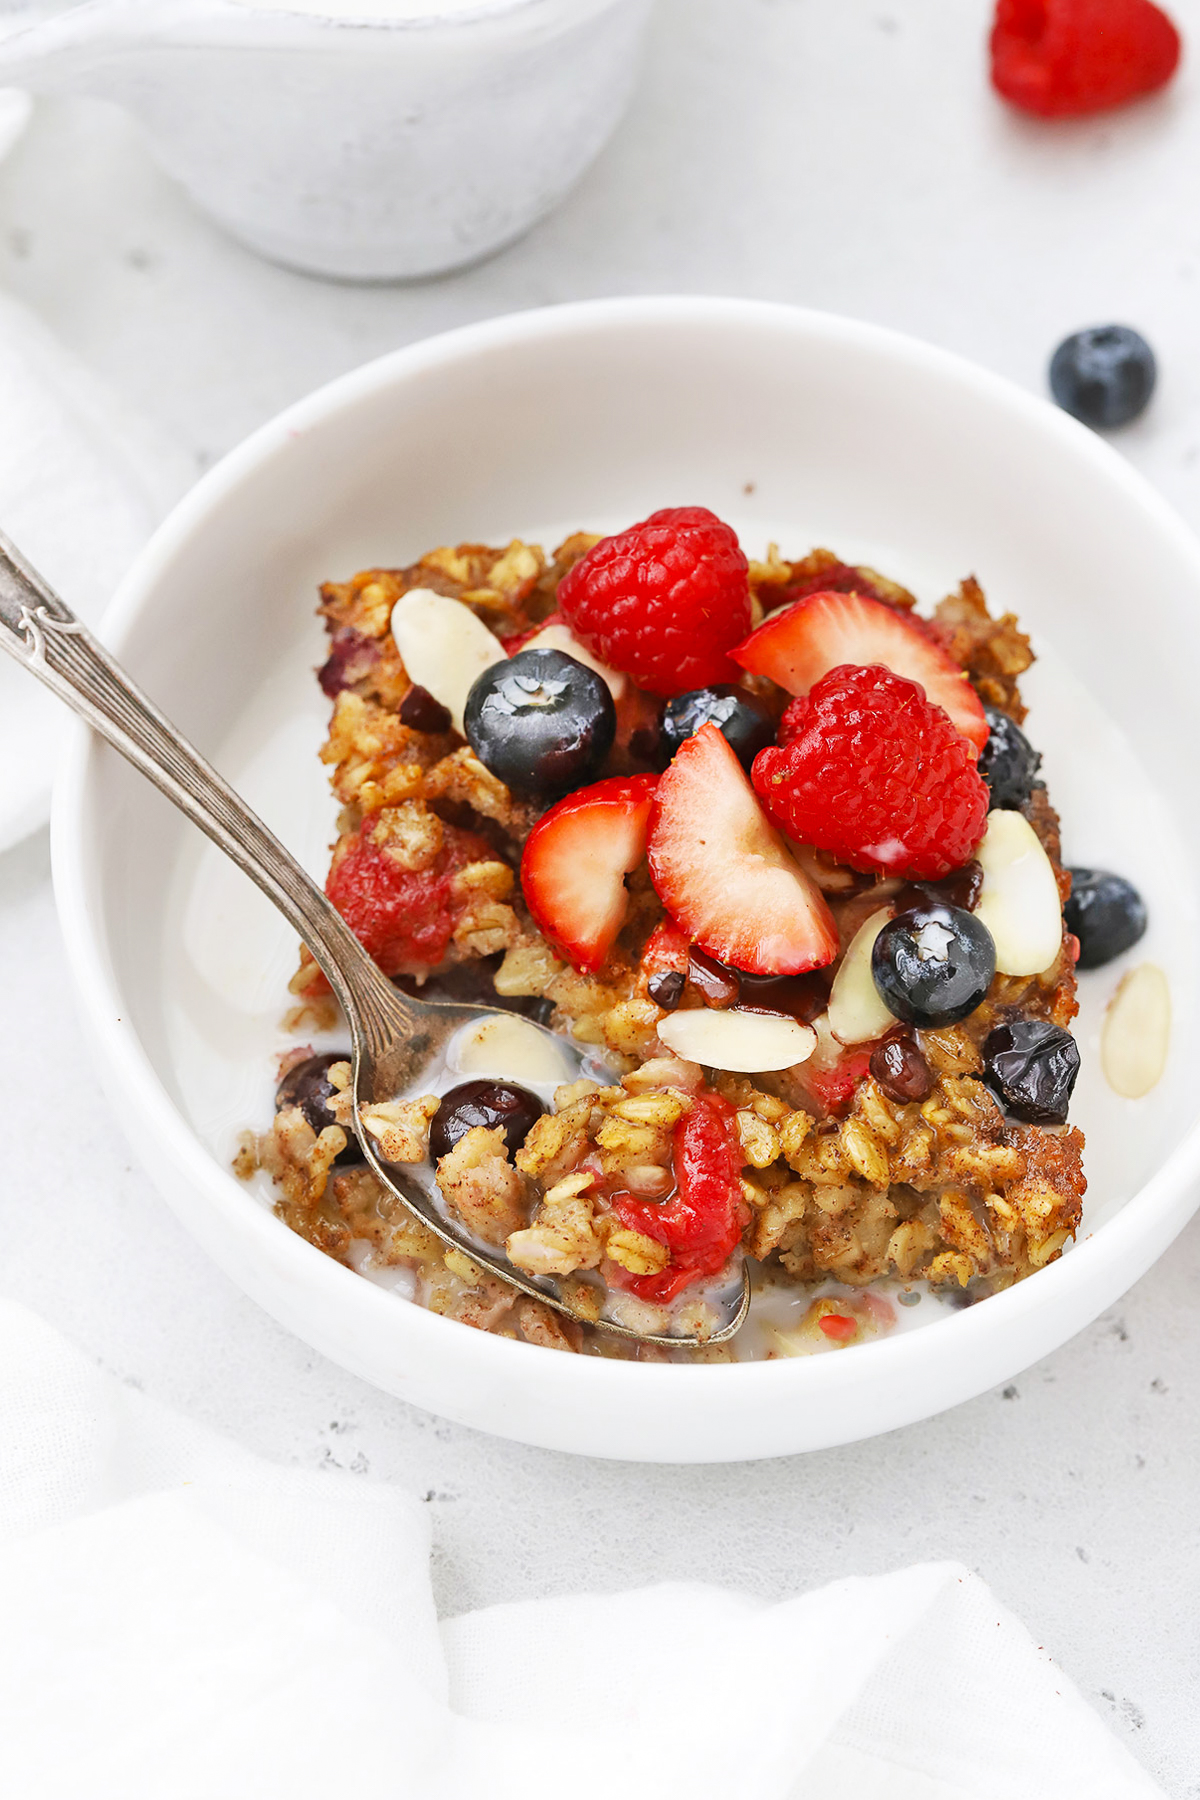 Front view of a slice of mixed berry baked oatmeal topped with sliced almonds, fresh berries and almond milk.